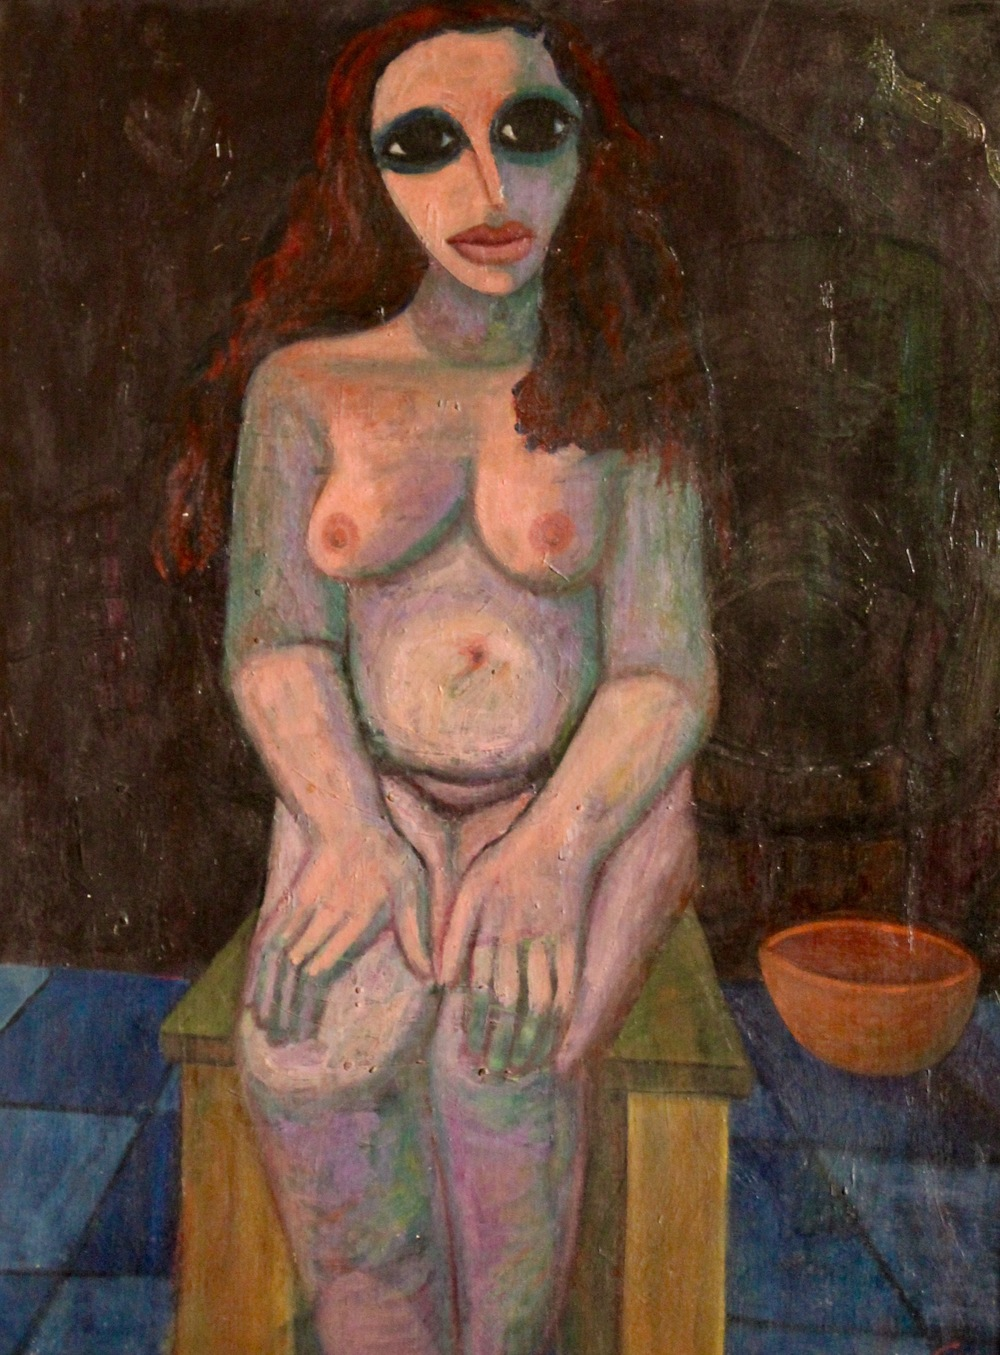 Ahmed Morsi, Seated Nude, 1959, Oil on canvas, 89 x 70 cm.